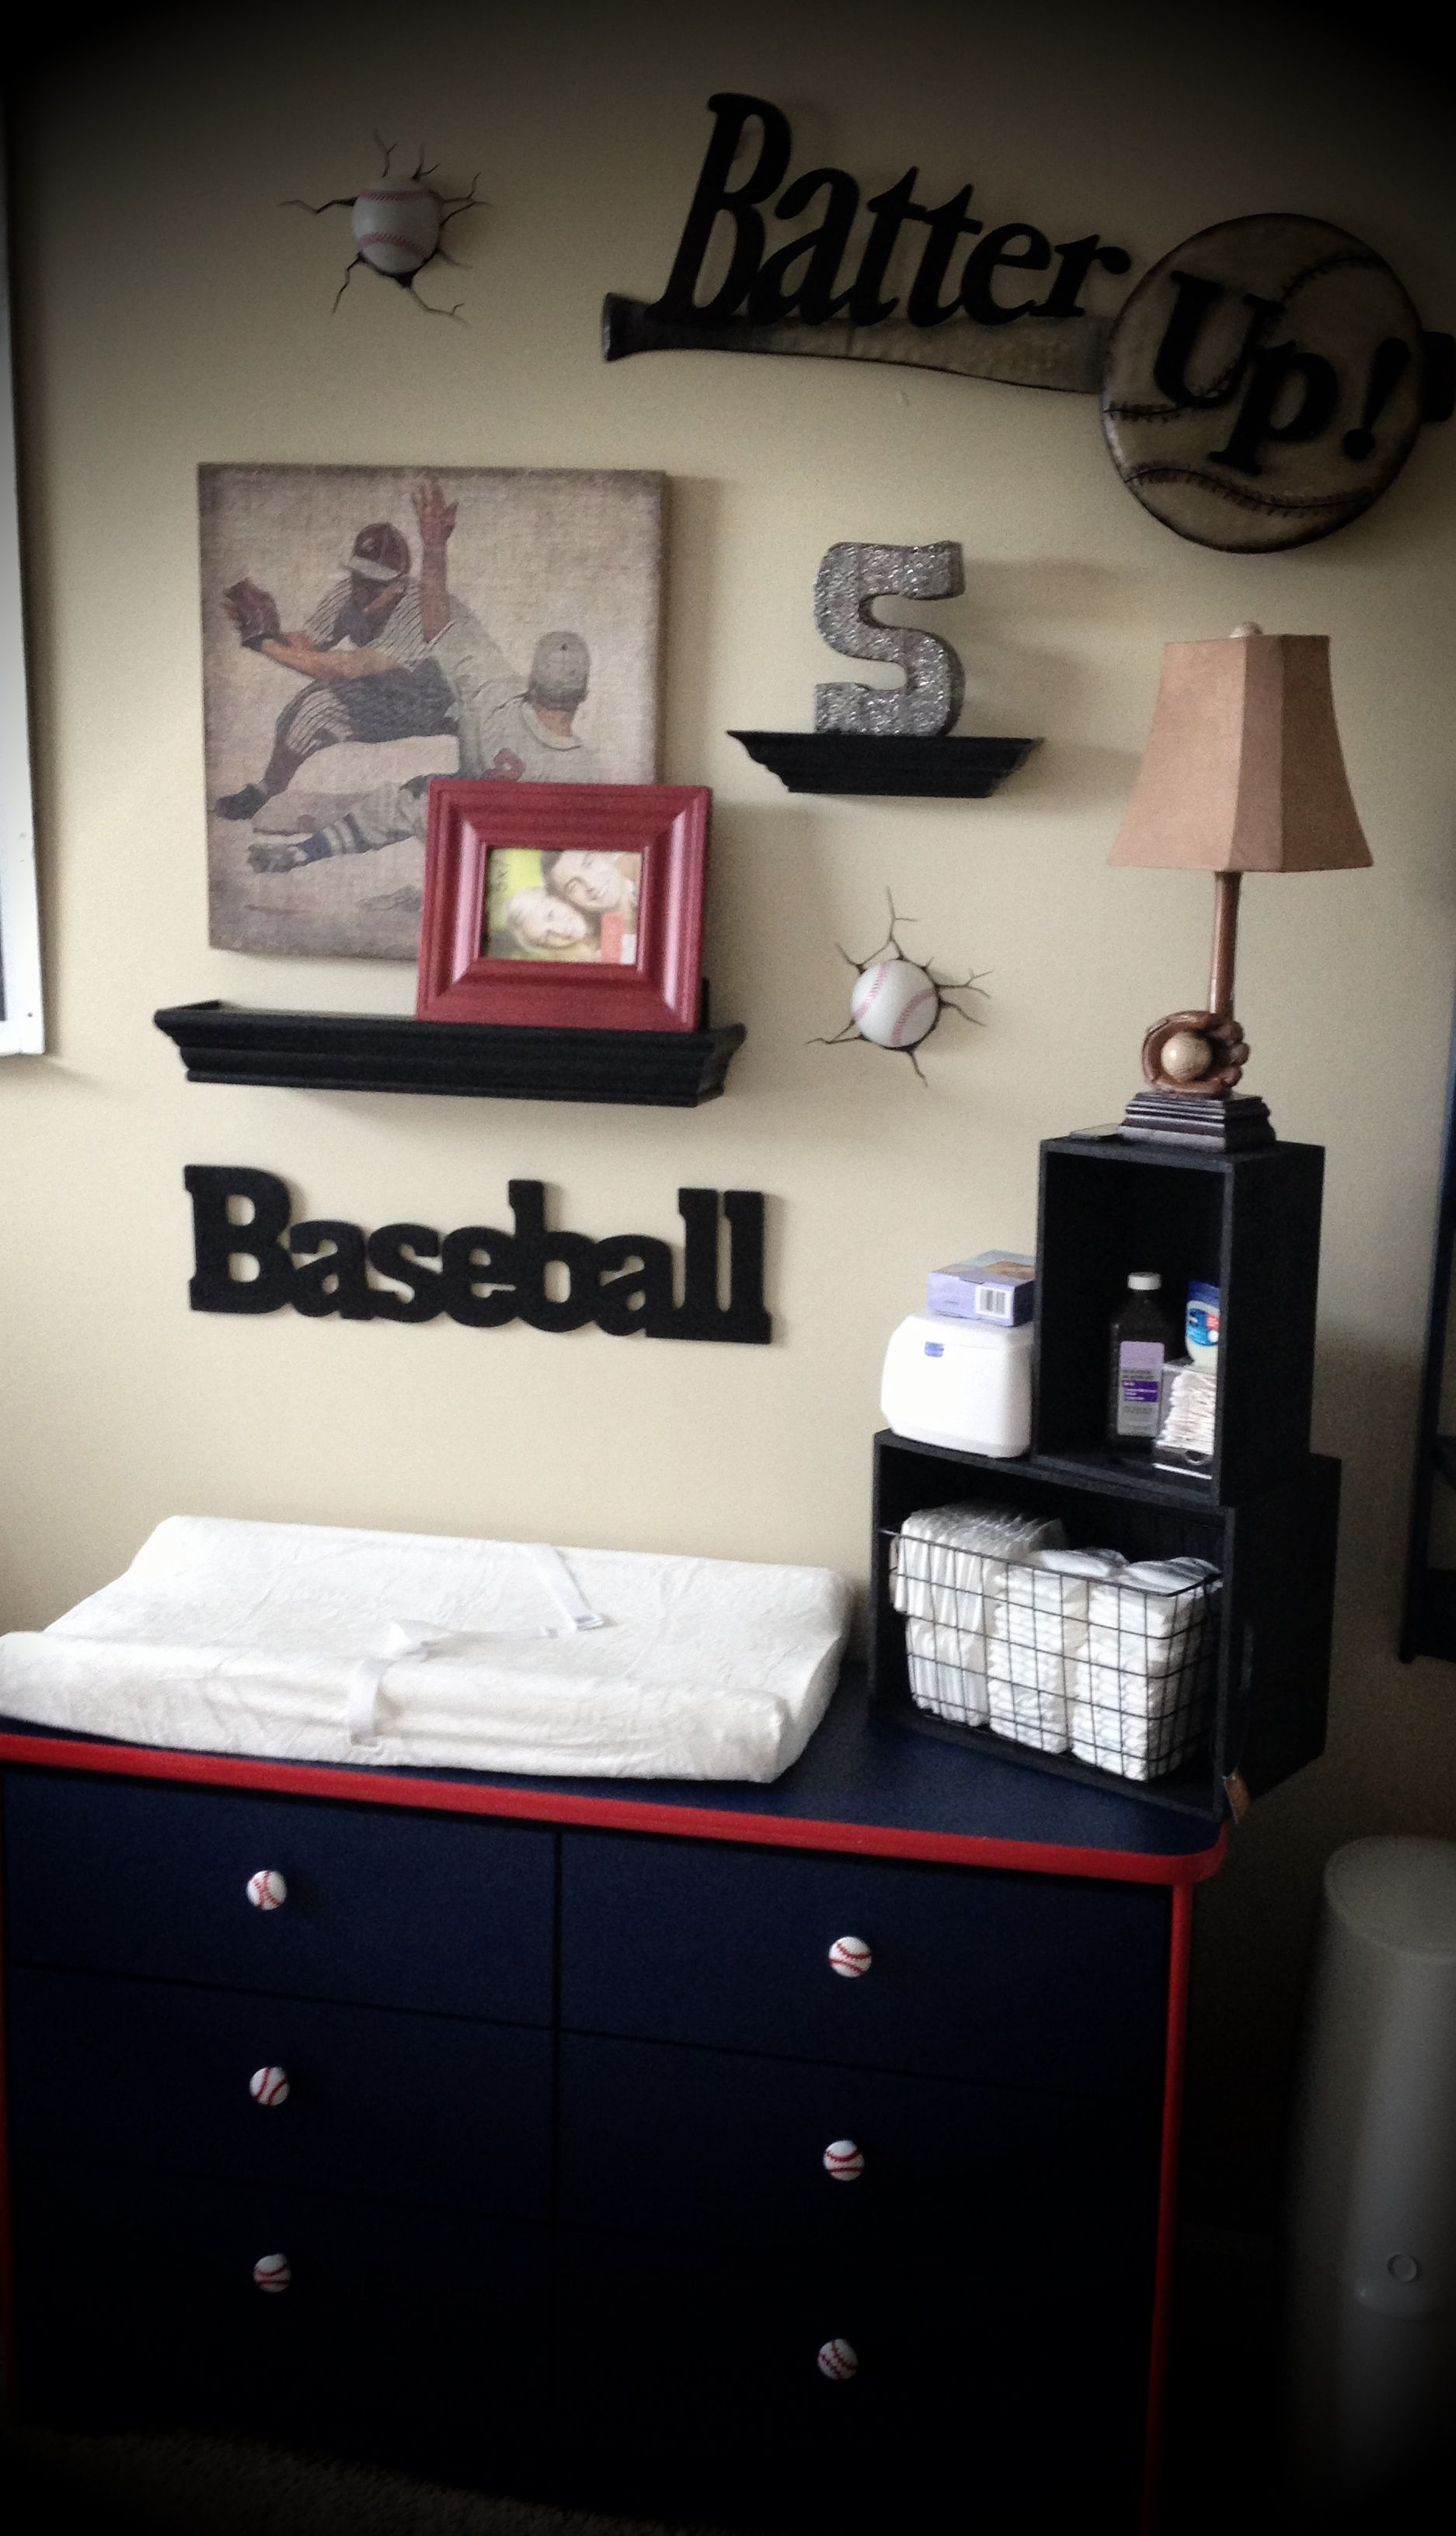 Vintage Baseball Decor For A View On Room In Dwelling House With Dark Furniture The Bedroom Exterior Nursery Ideas Party